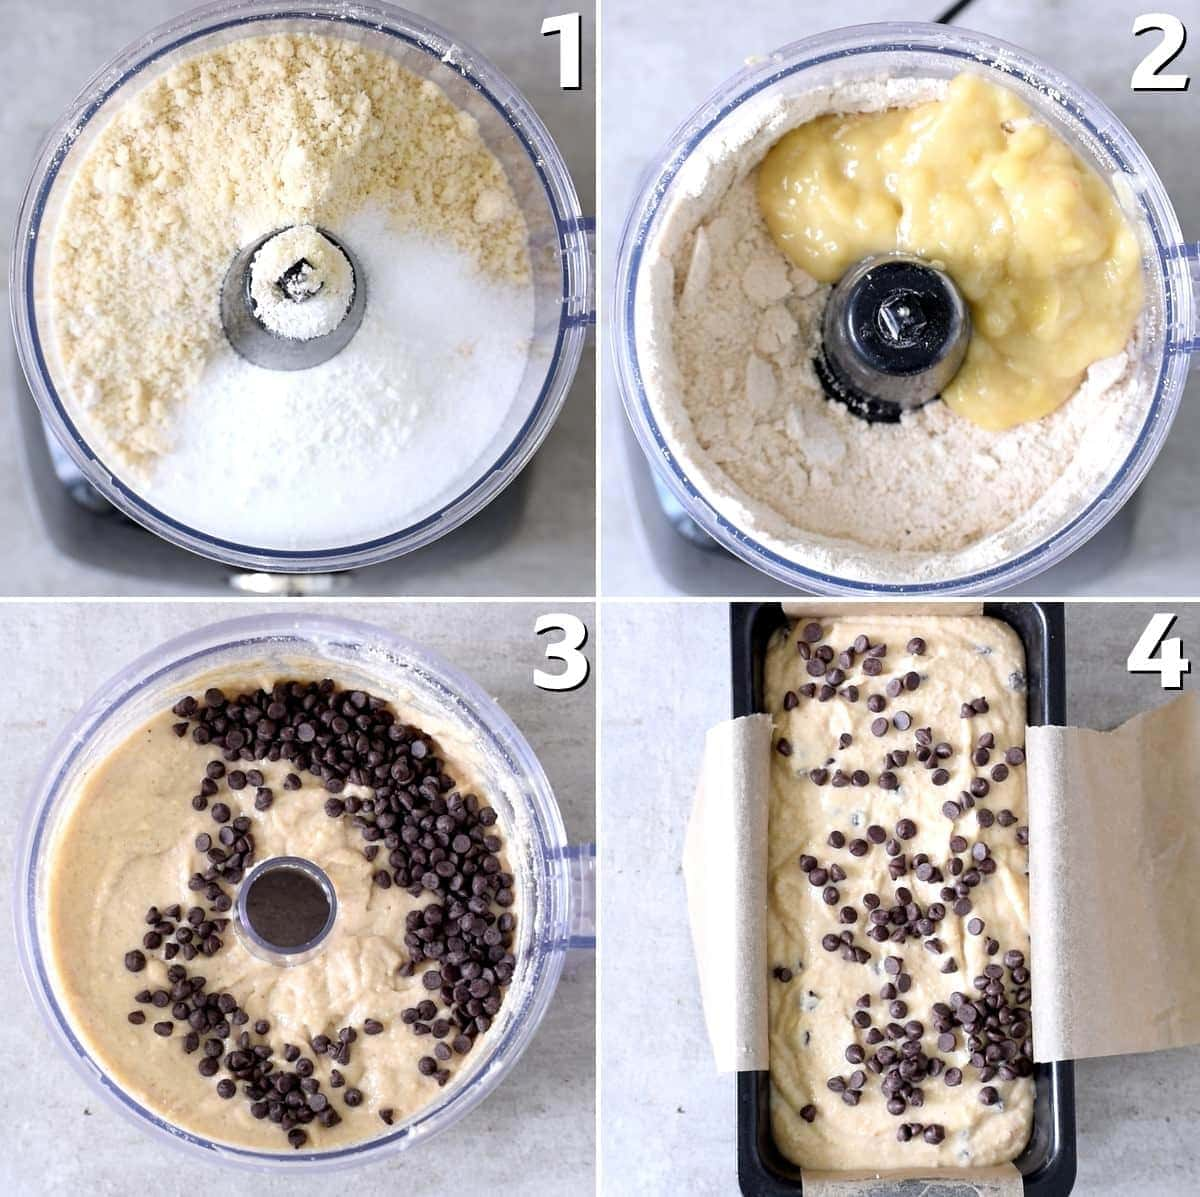 4 step-by-step photos showig how to make banana bread with chocolate chips in a food processor